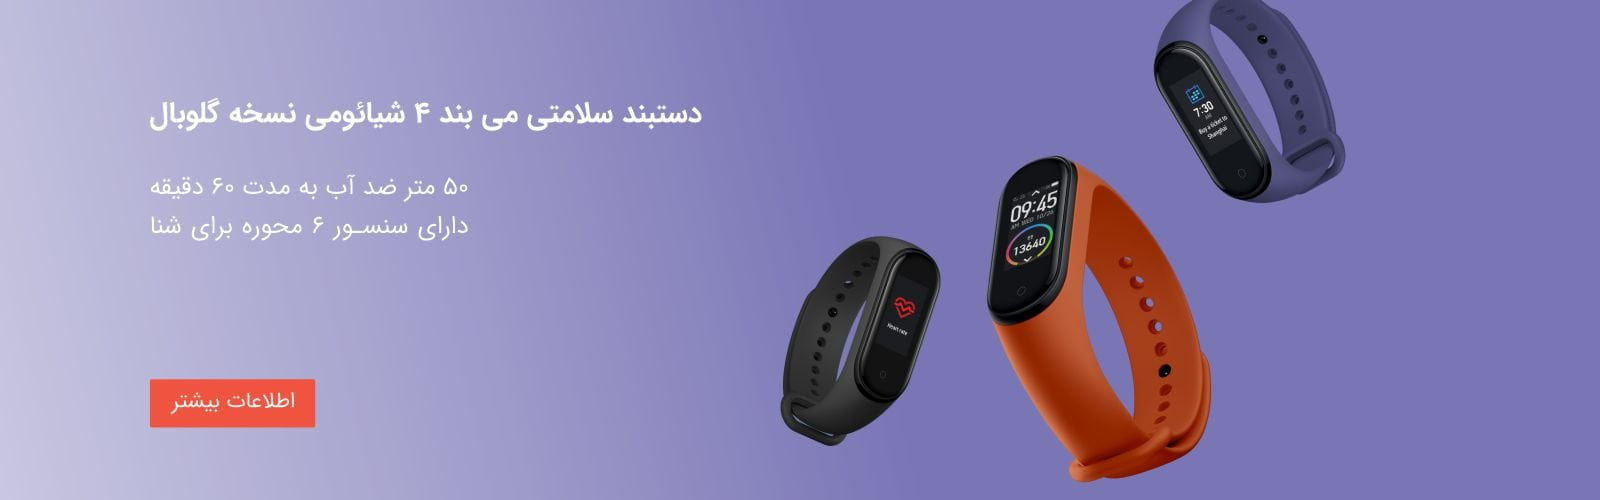 Slidders-miband4global